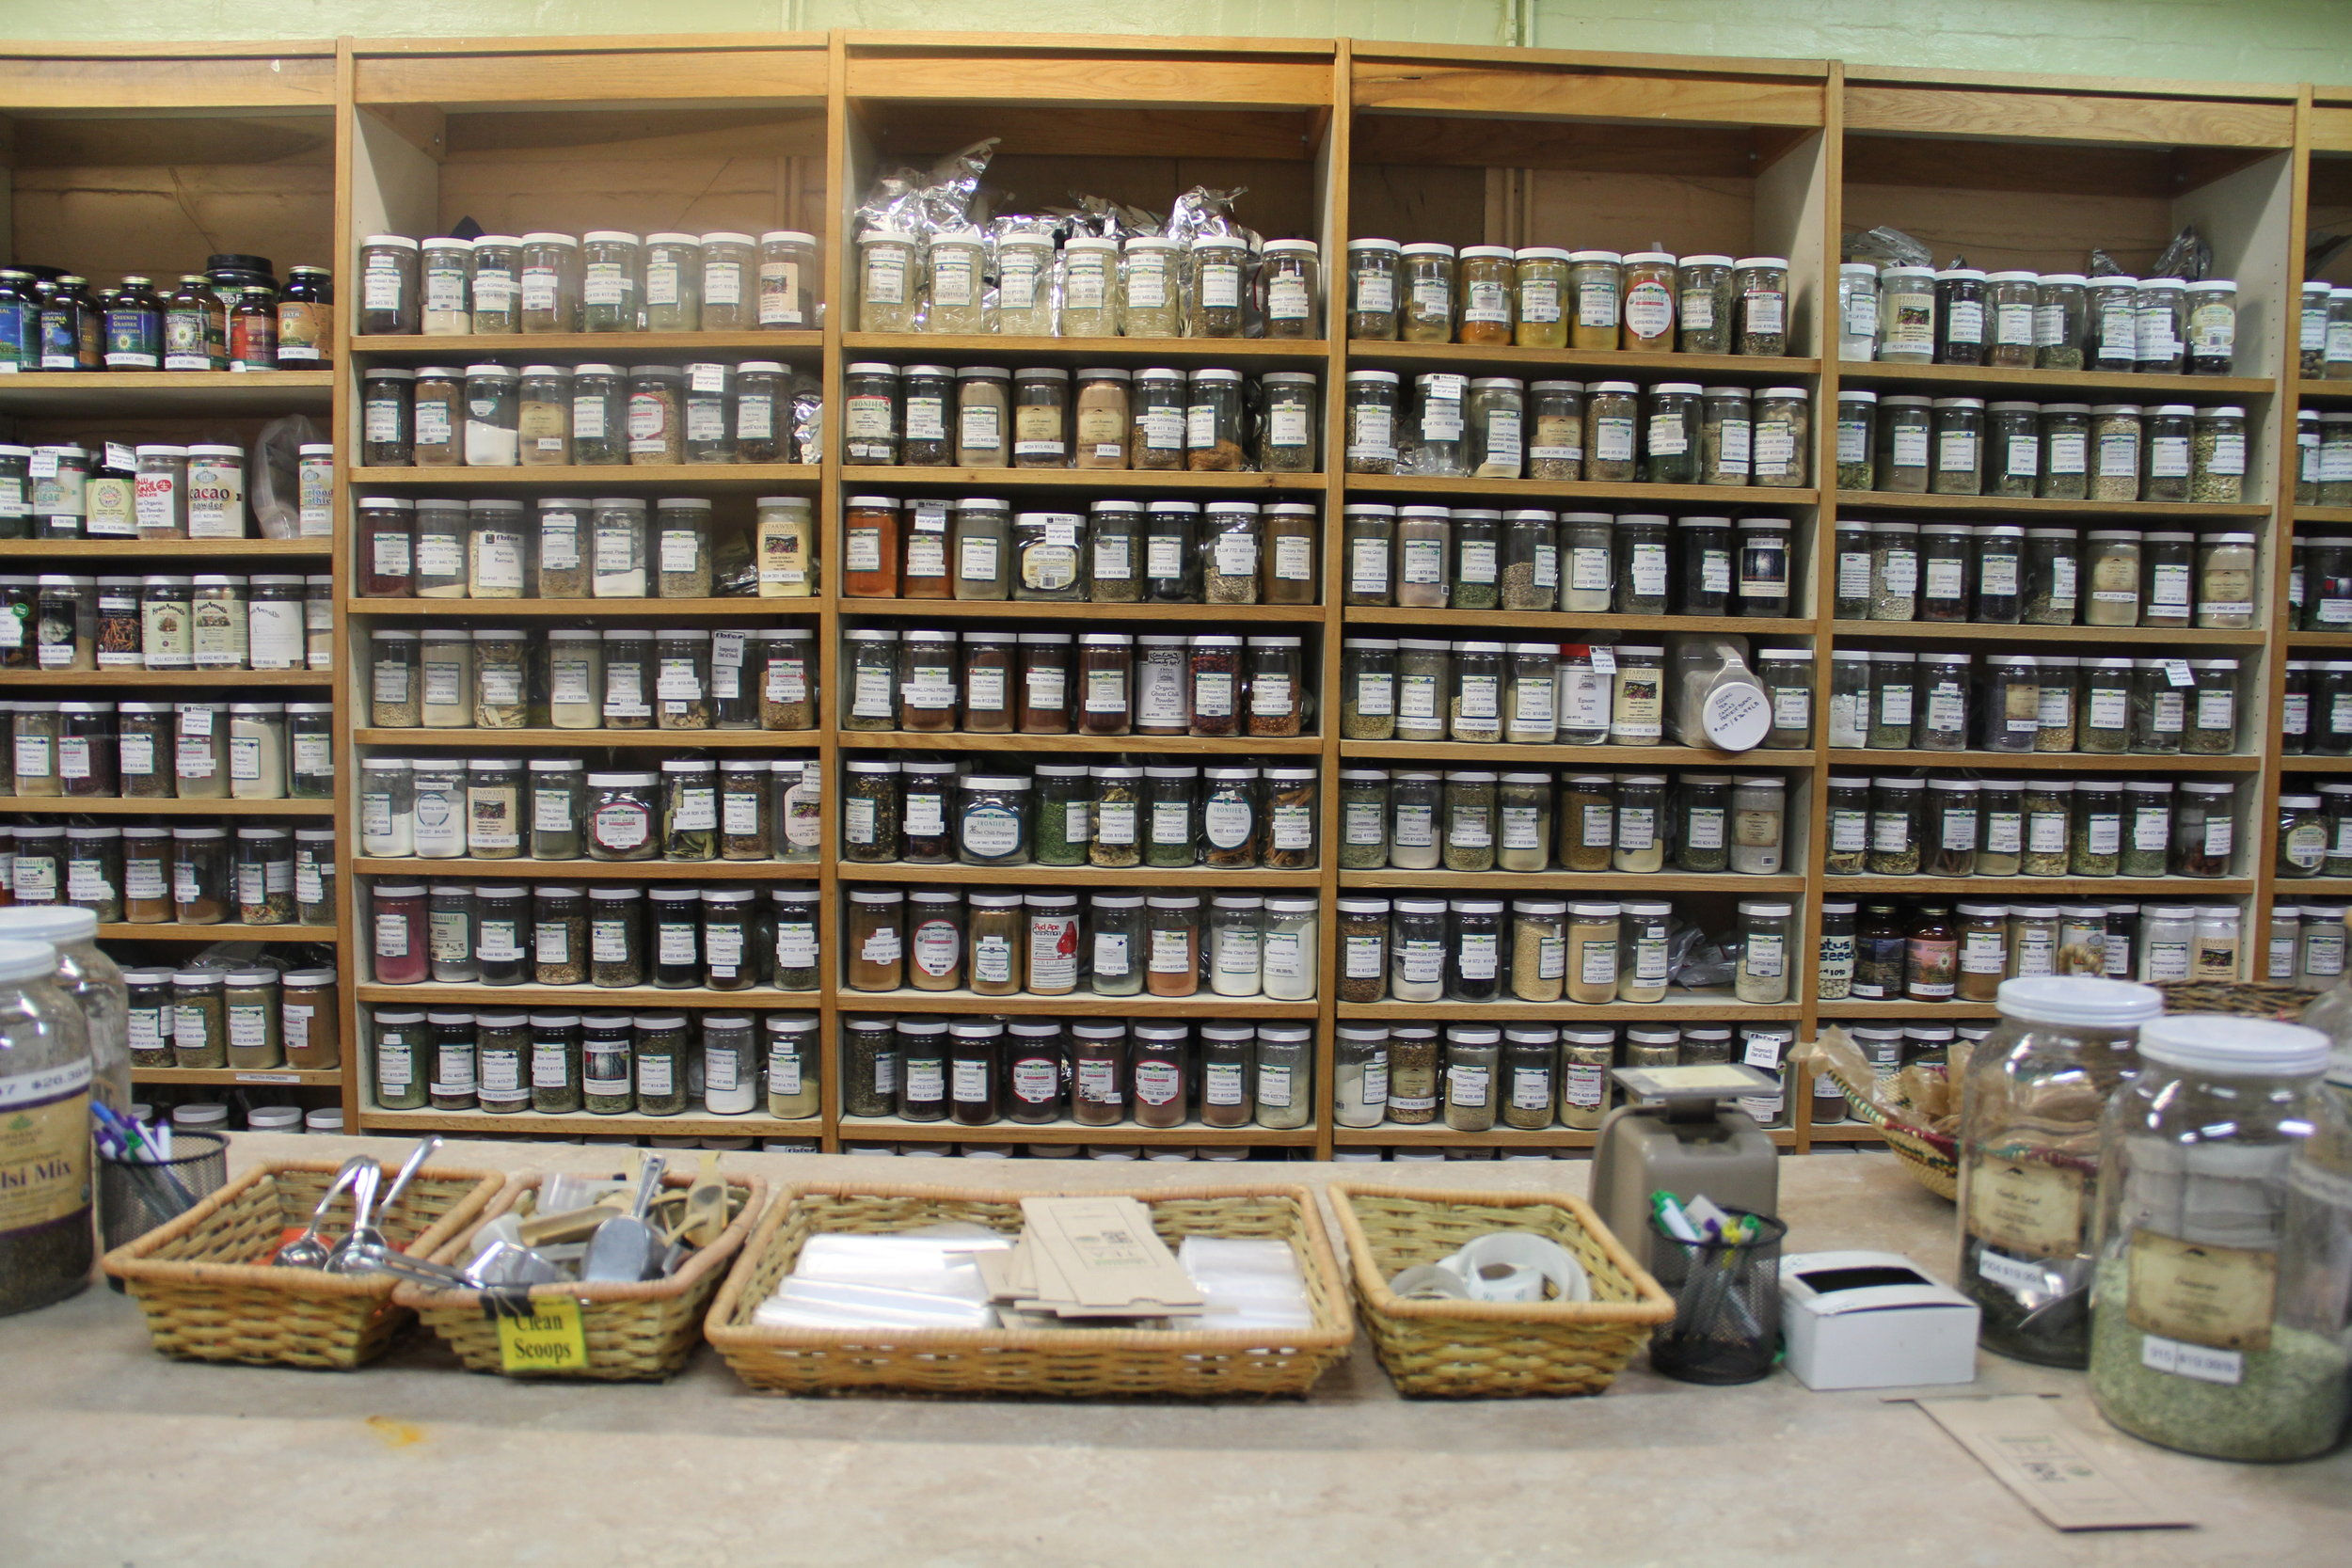 Look at all that glorious Bulk! This photo only shows one wall of their Bulk room and was taken from their website.